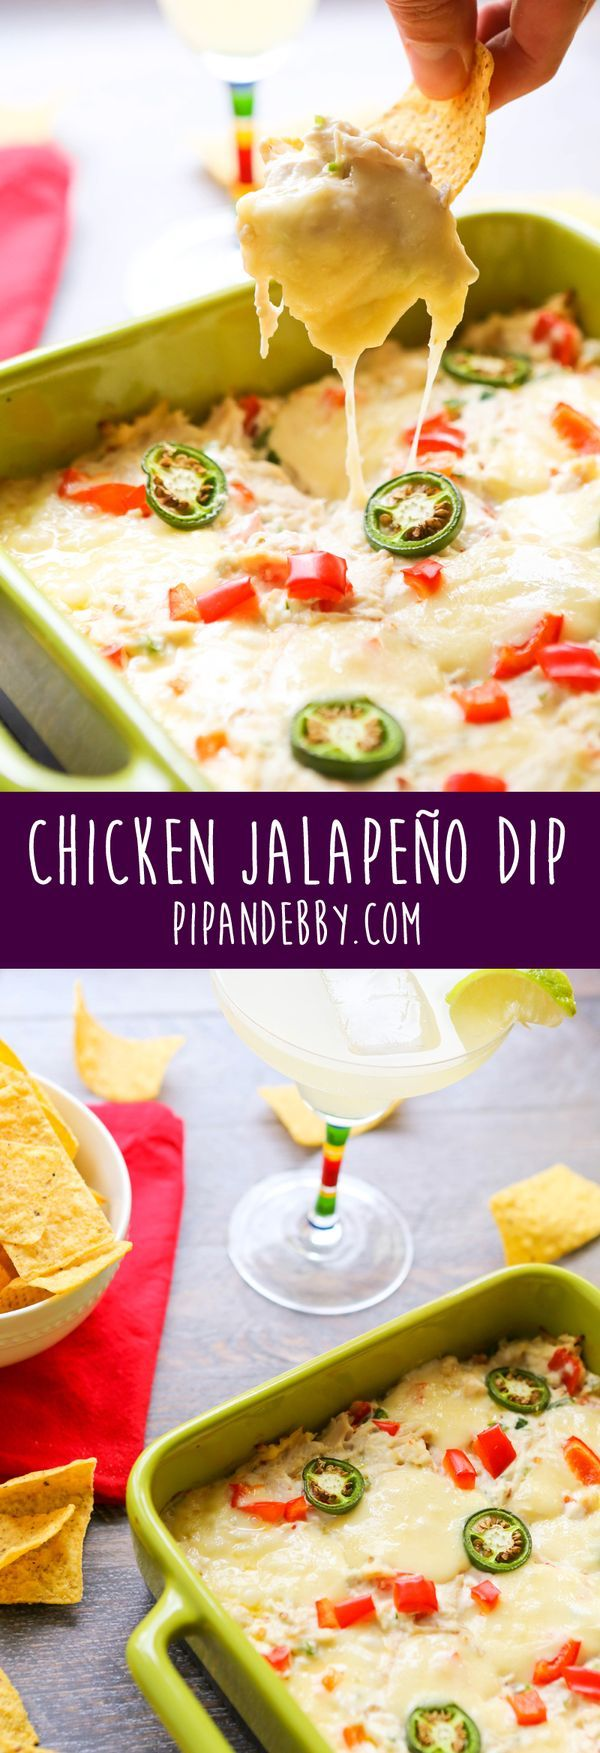 Chicken Jalapeño Dip   Spice, goo and meat in a dish! This is one of my all-time favorite appetizers for parties.